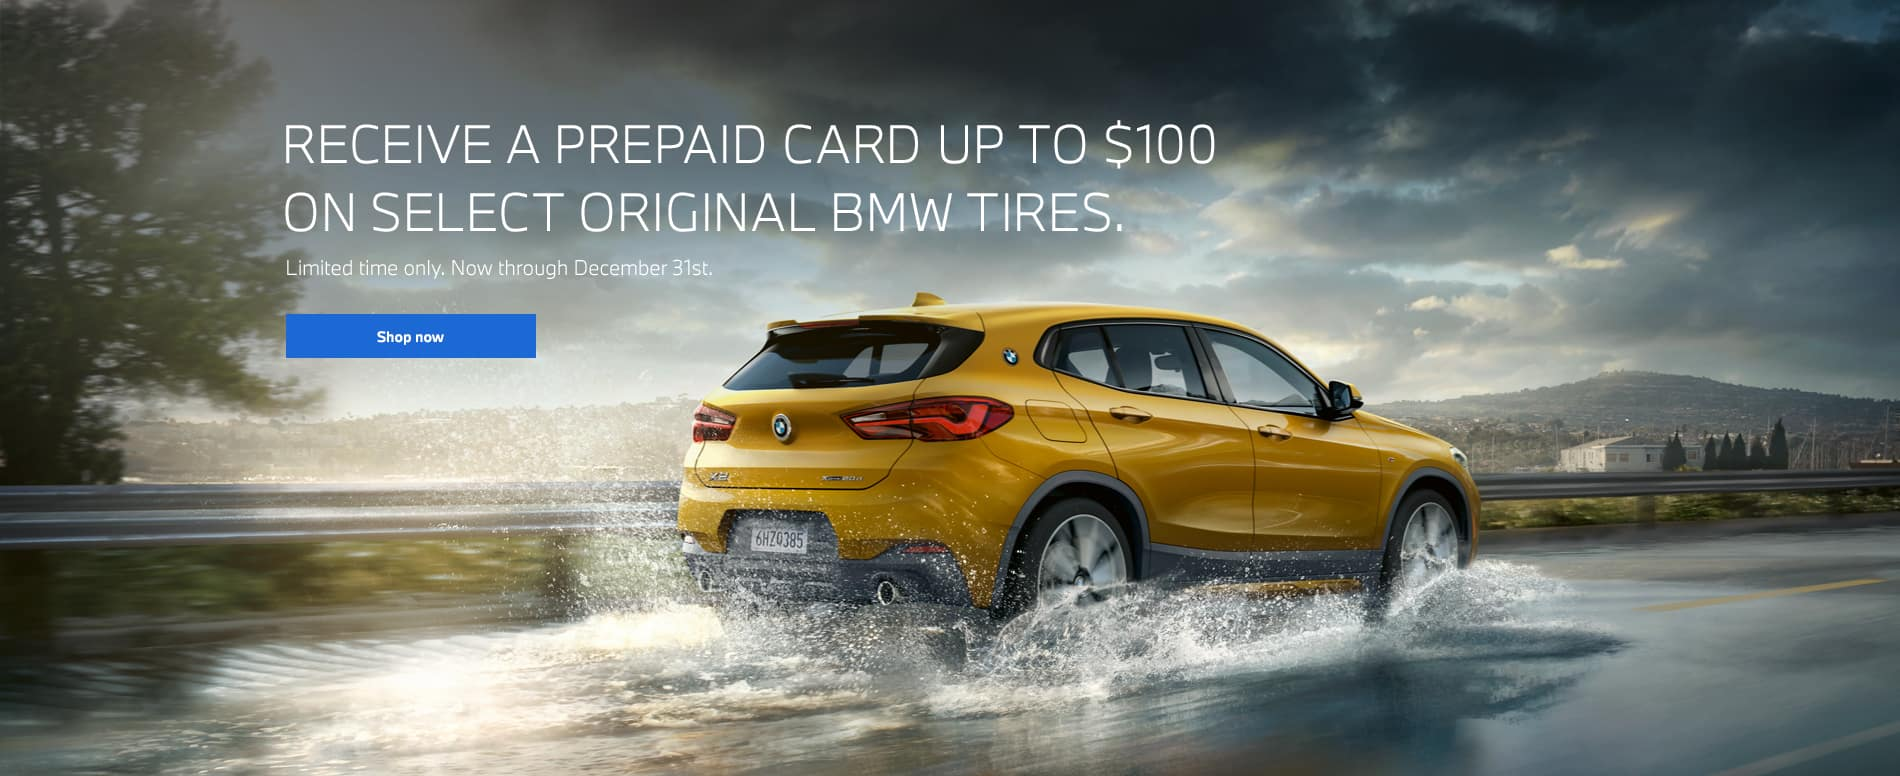 BMW Winter Tire Rebate